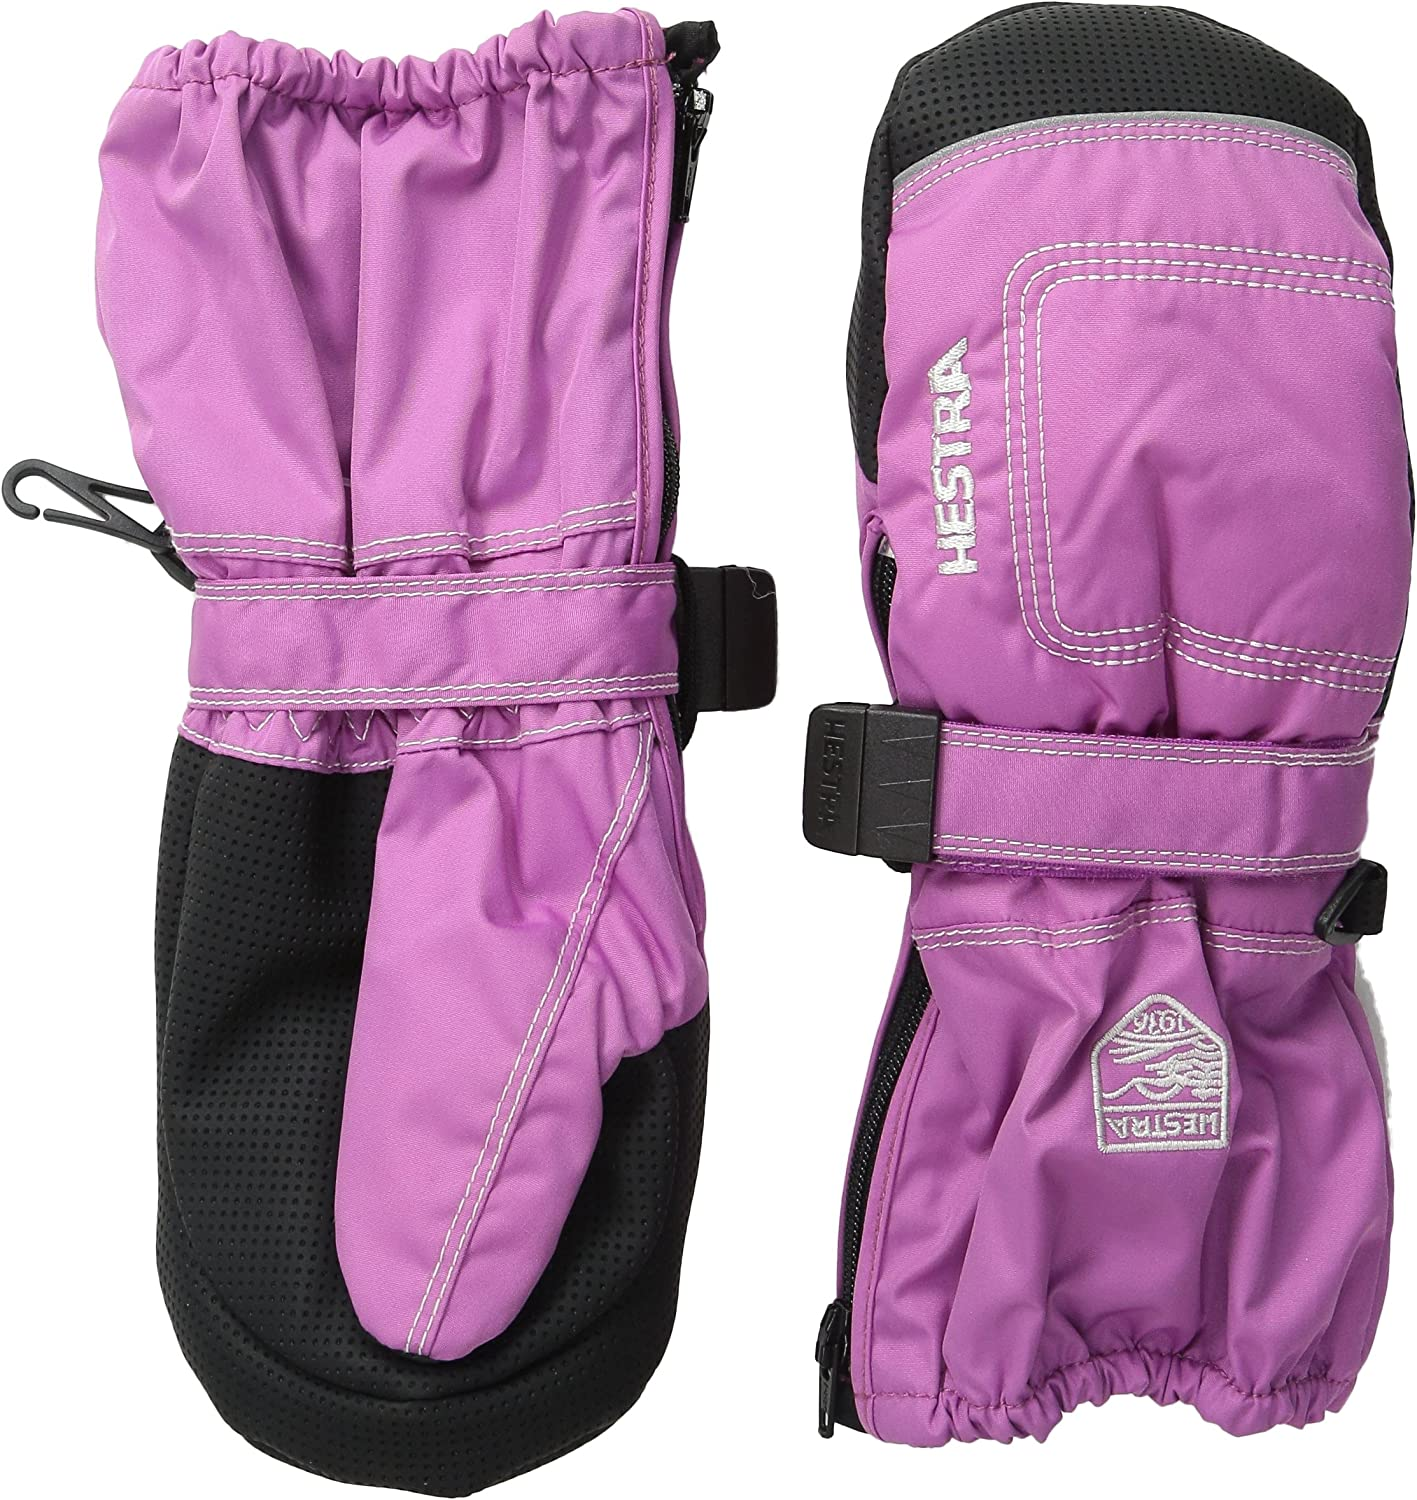 More about Baby Zip Long Mitt from Hestra